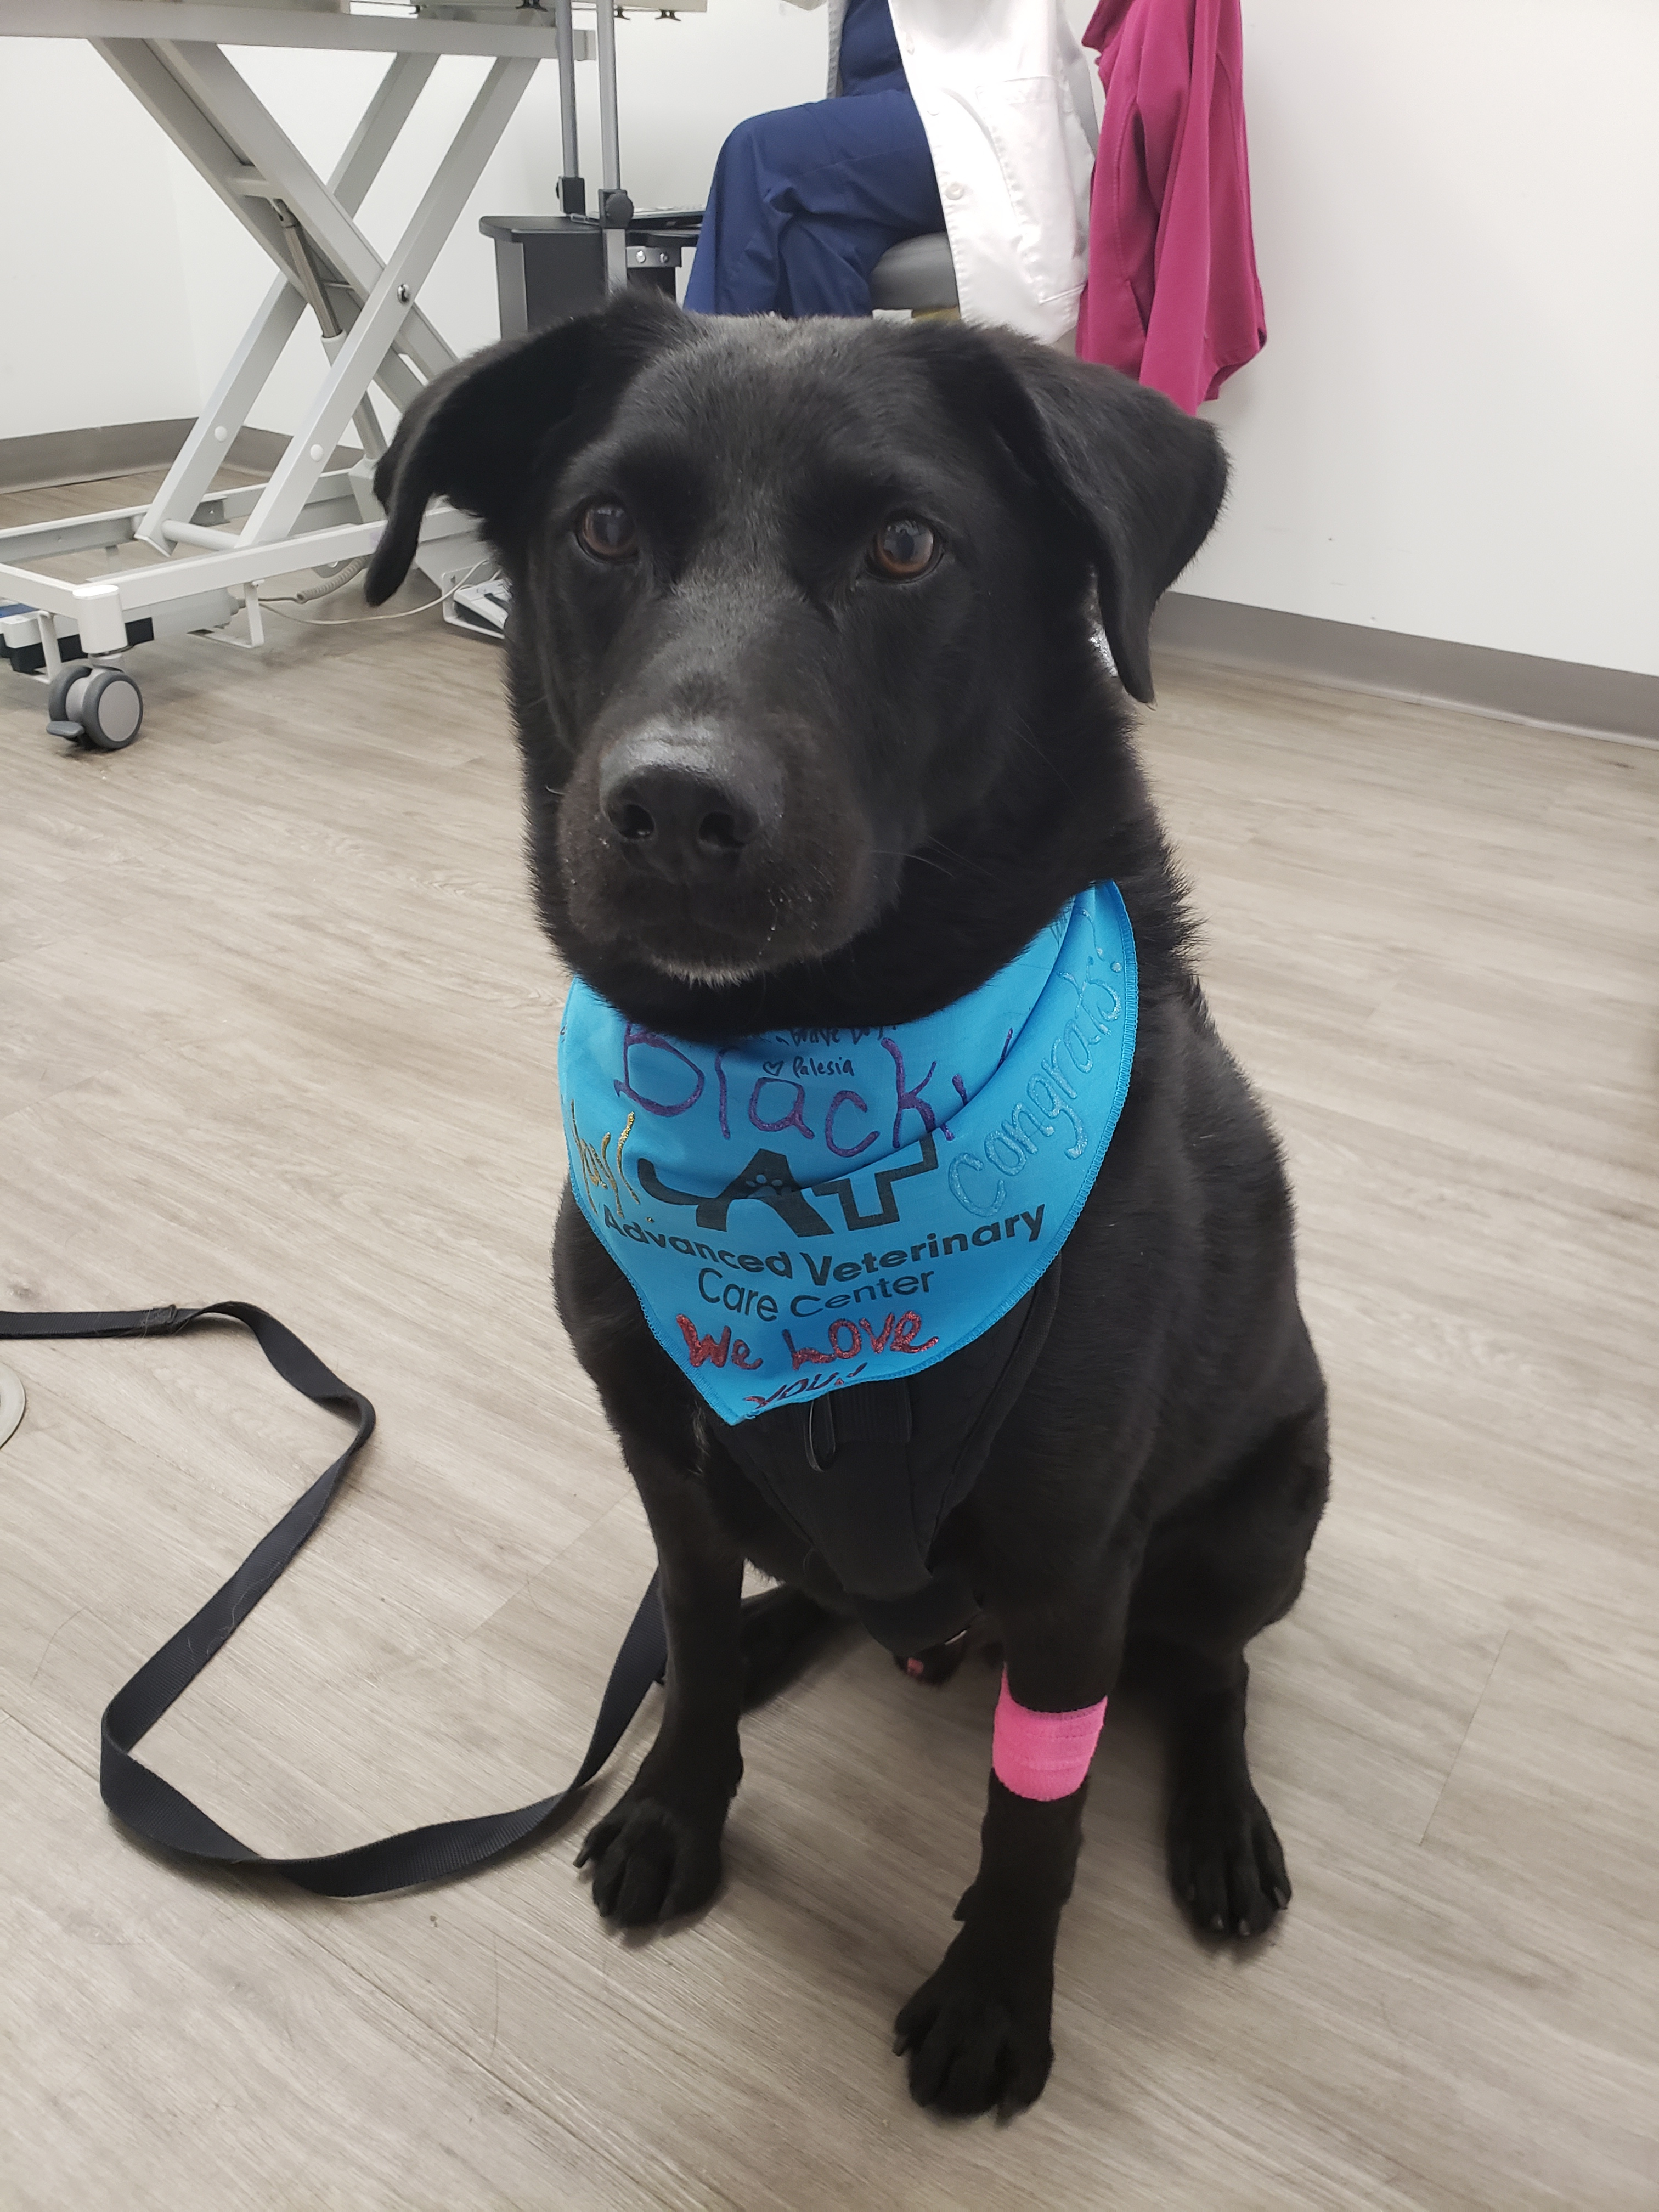 dog on his last day of chemotherapy for canine lymphoma